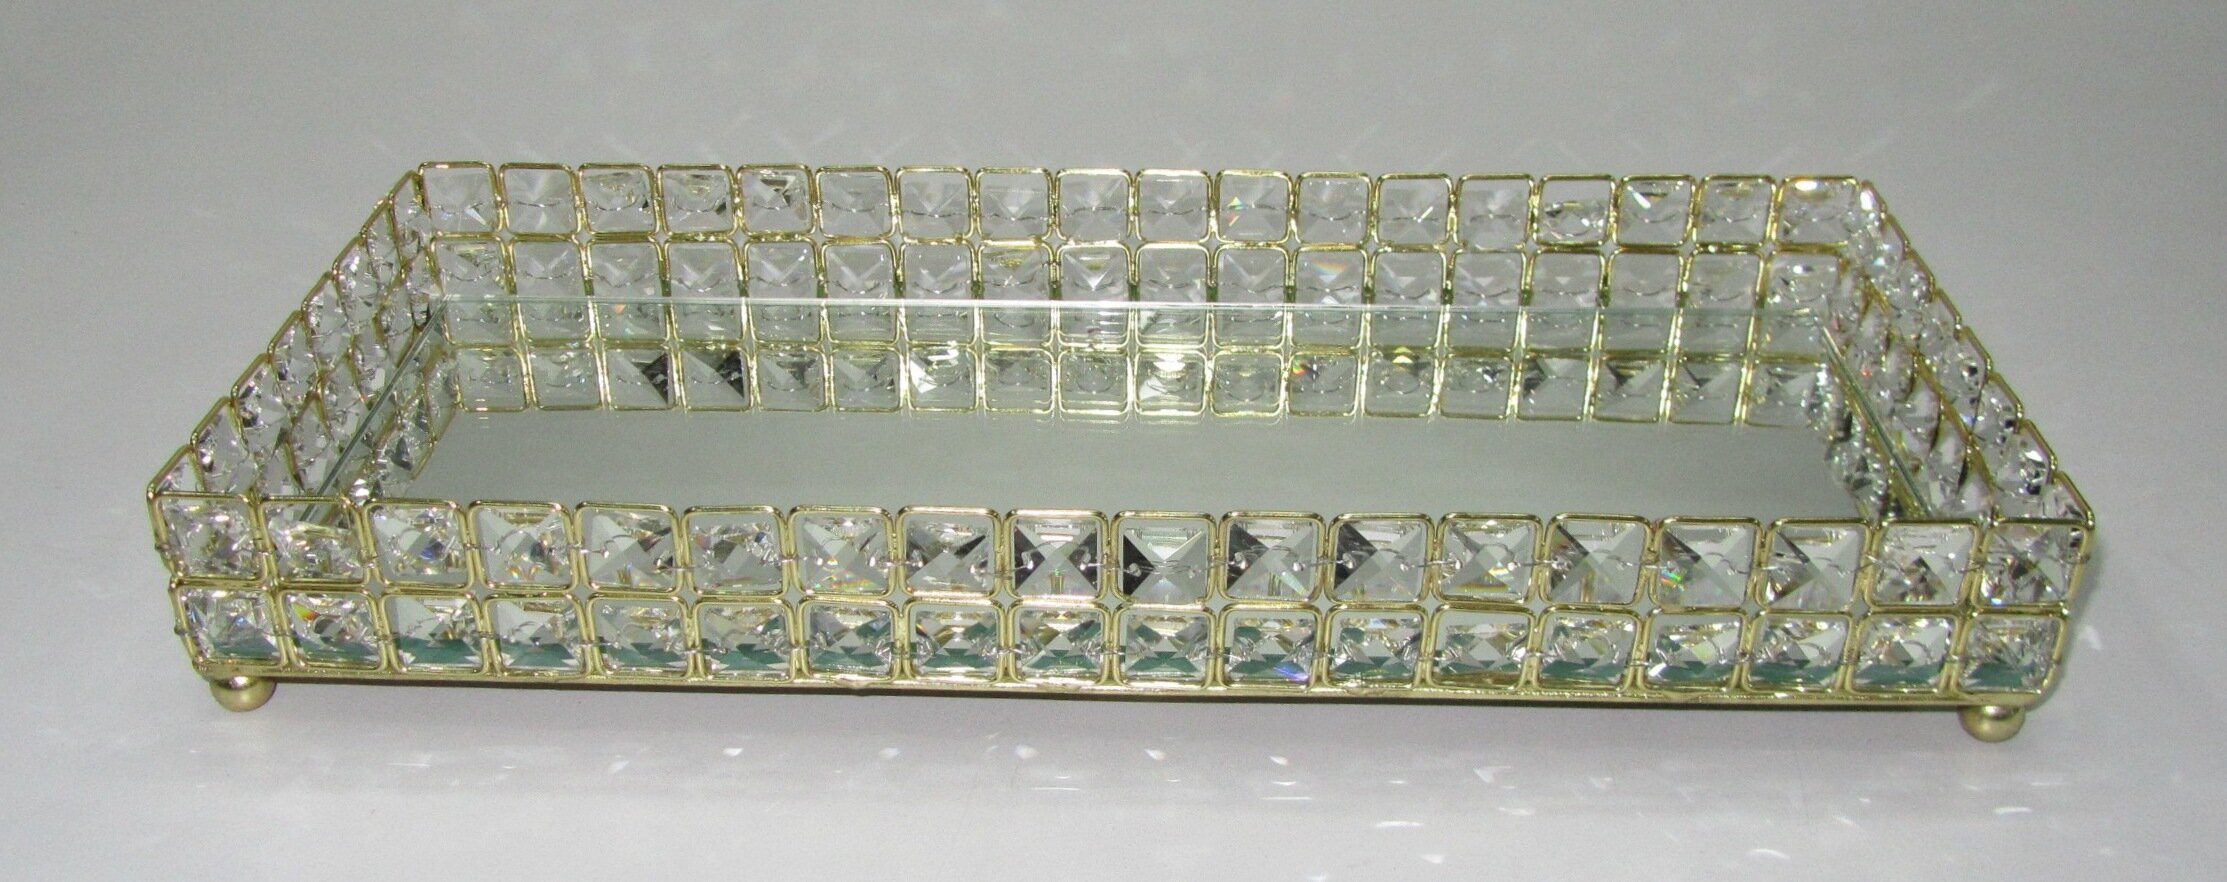 with dressers additional dresser and image oval crystal mirror vanity vanities of trays for mirrored mesmerizing beyond tray bath bed perfume